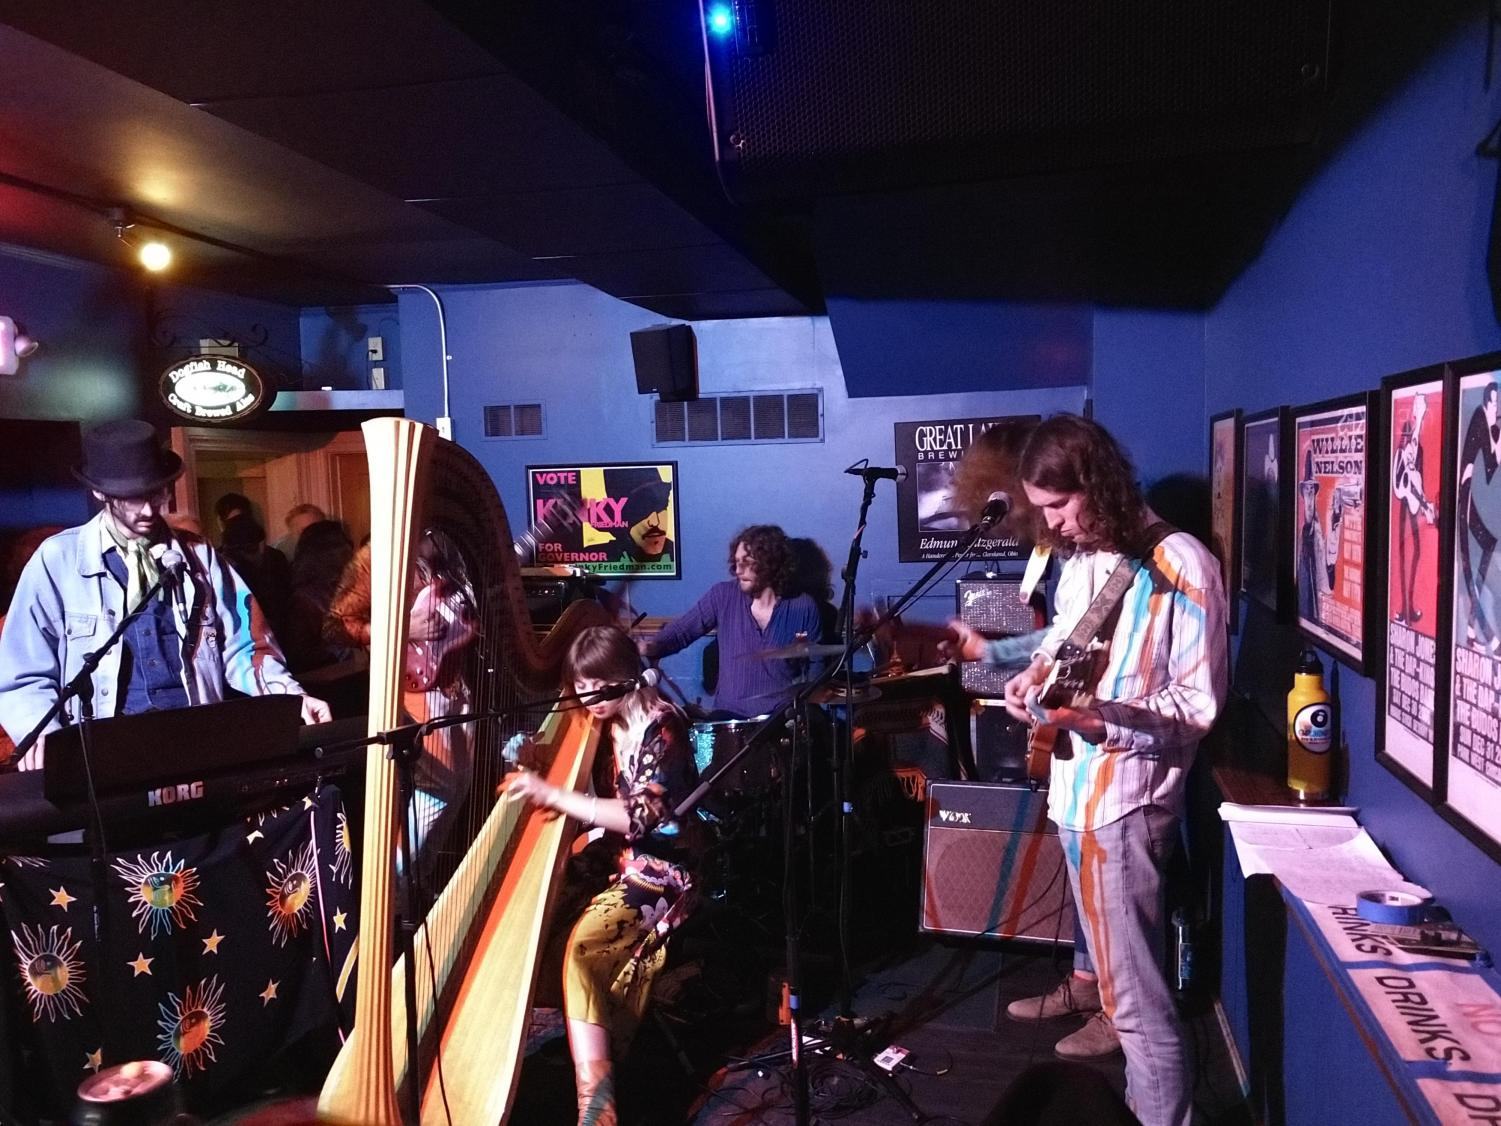 During the second set, the band explores outer space in Dark Star, by the Grateful Dead.